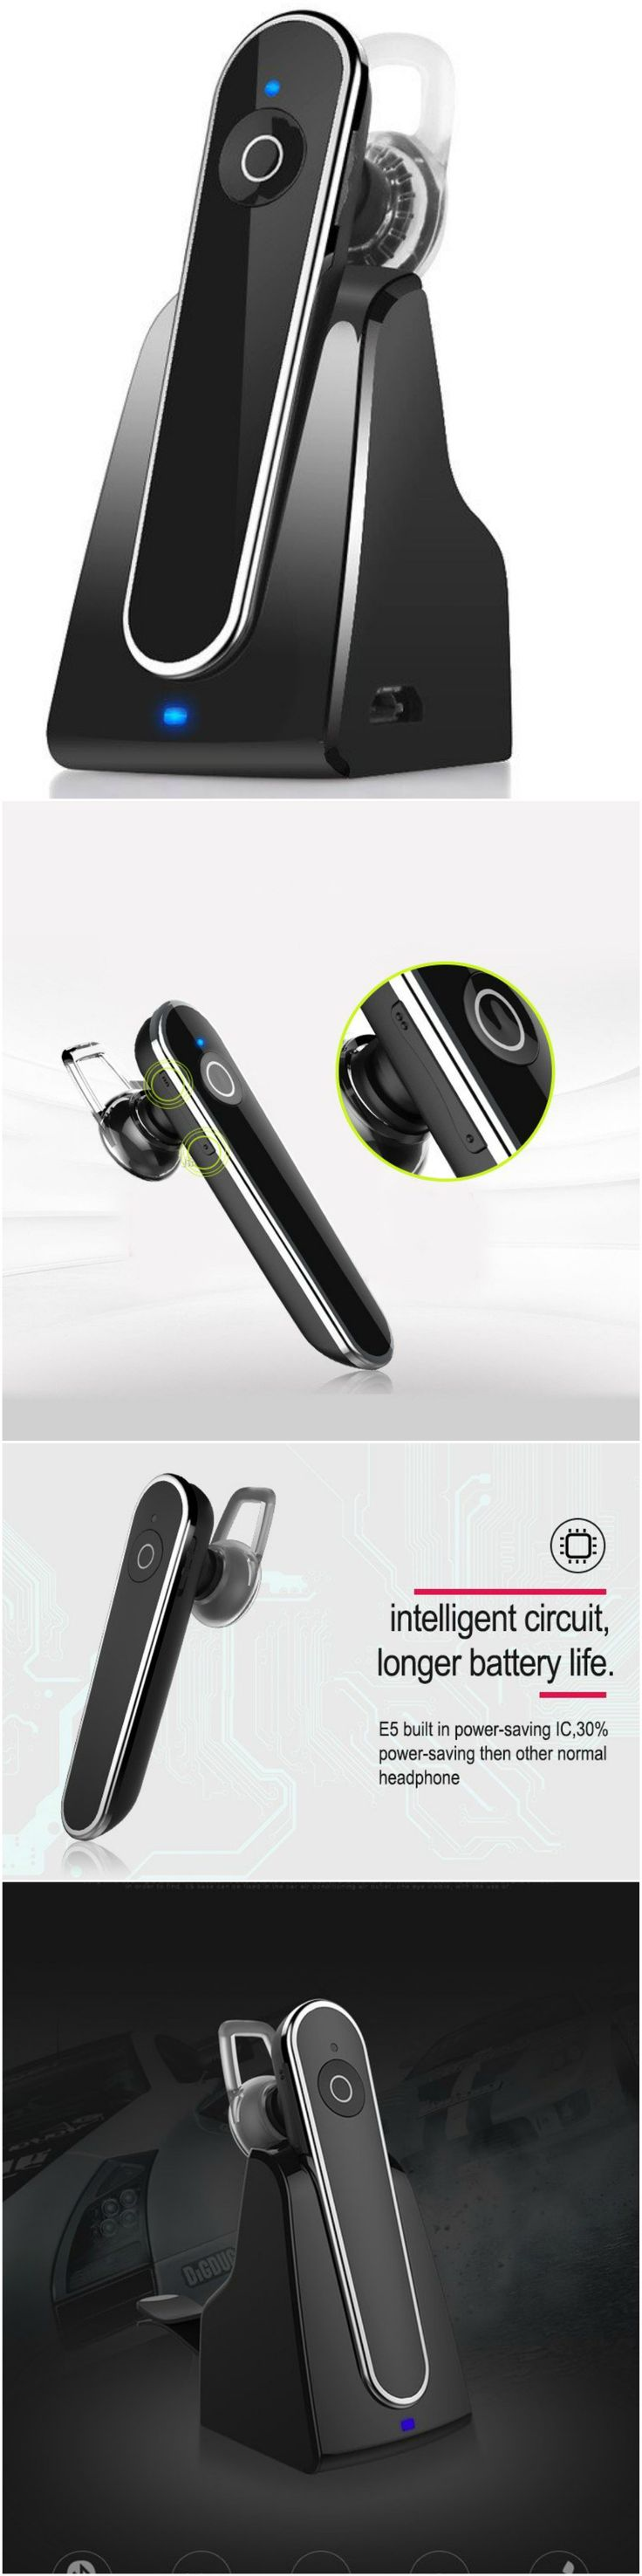 New handsfree wireless headset for driving, running and office. #Technology